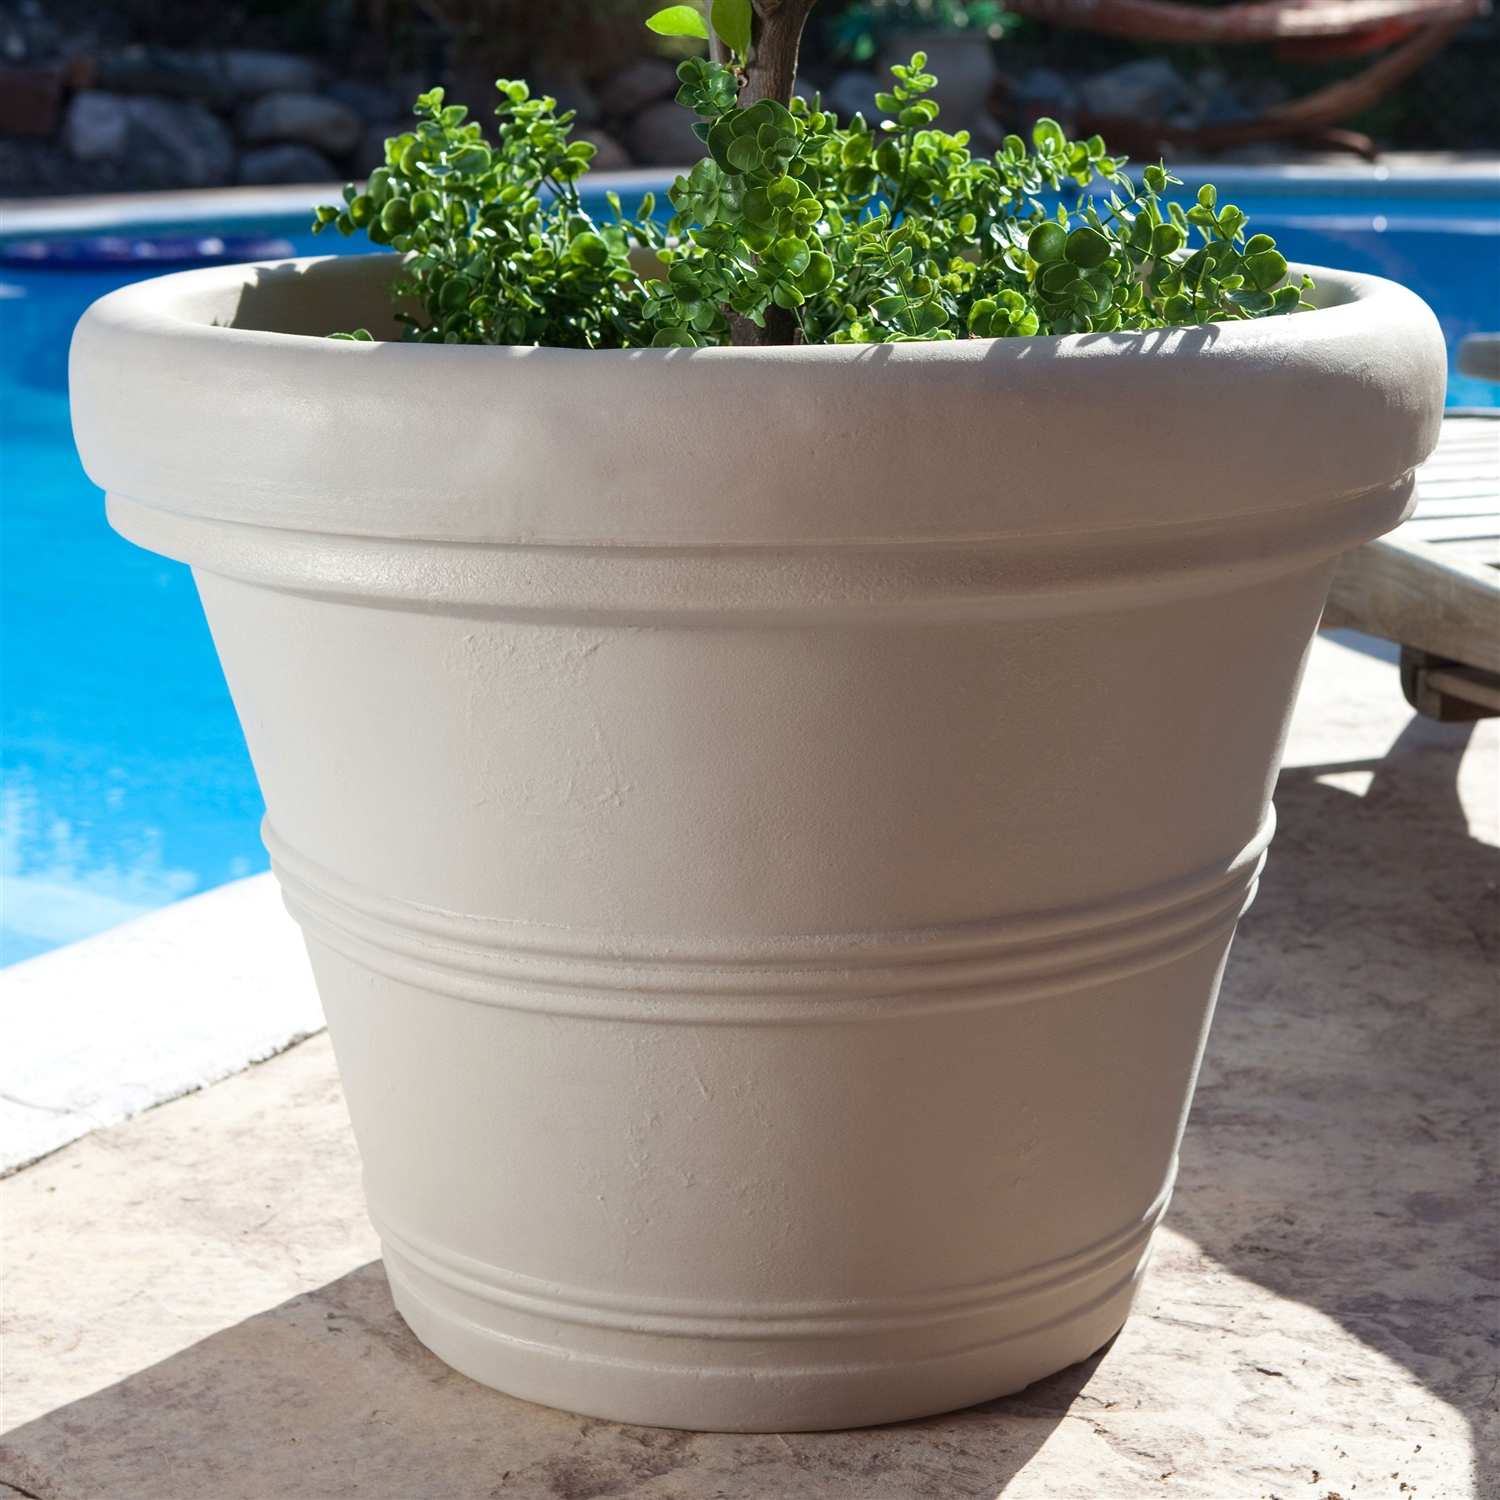 Round 26 Inch Outdoor Patio Planter For Garden Plants Or Small Tree In  Weathered Concrete